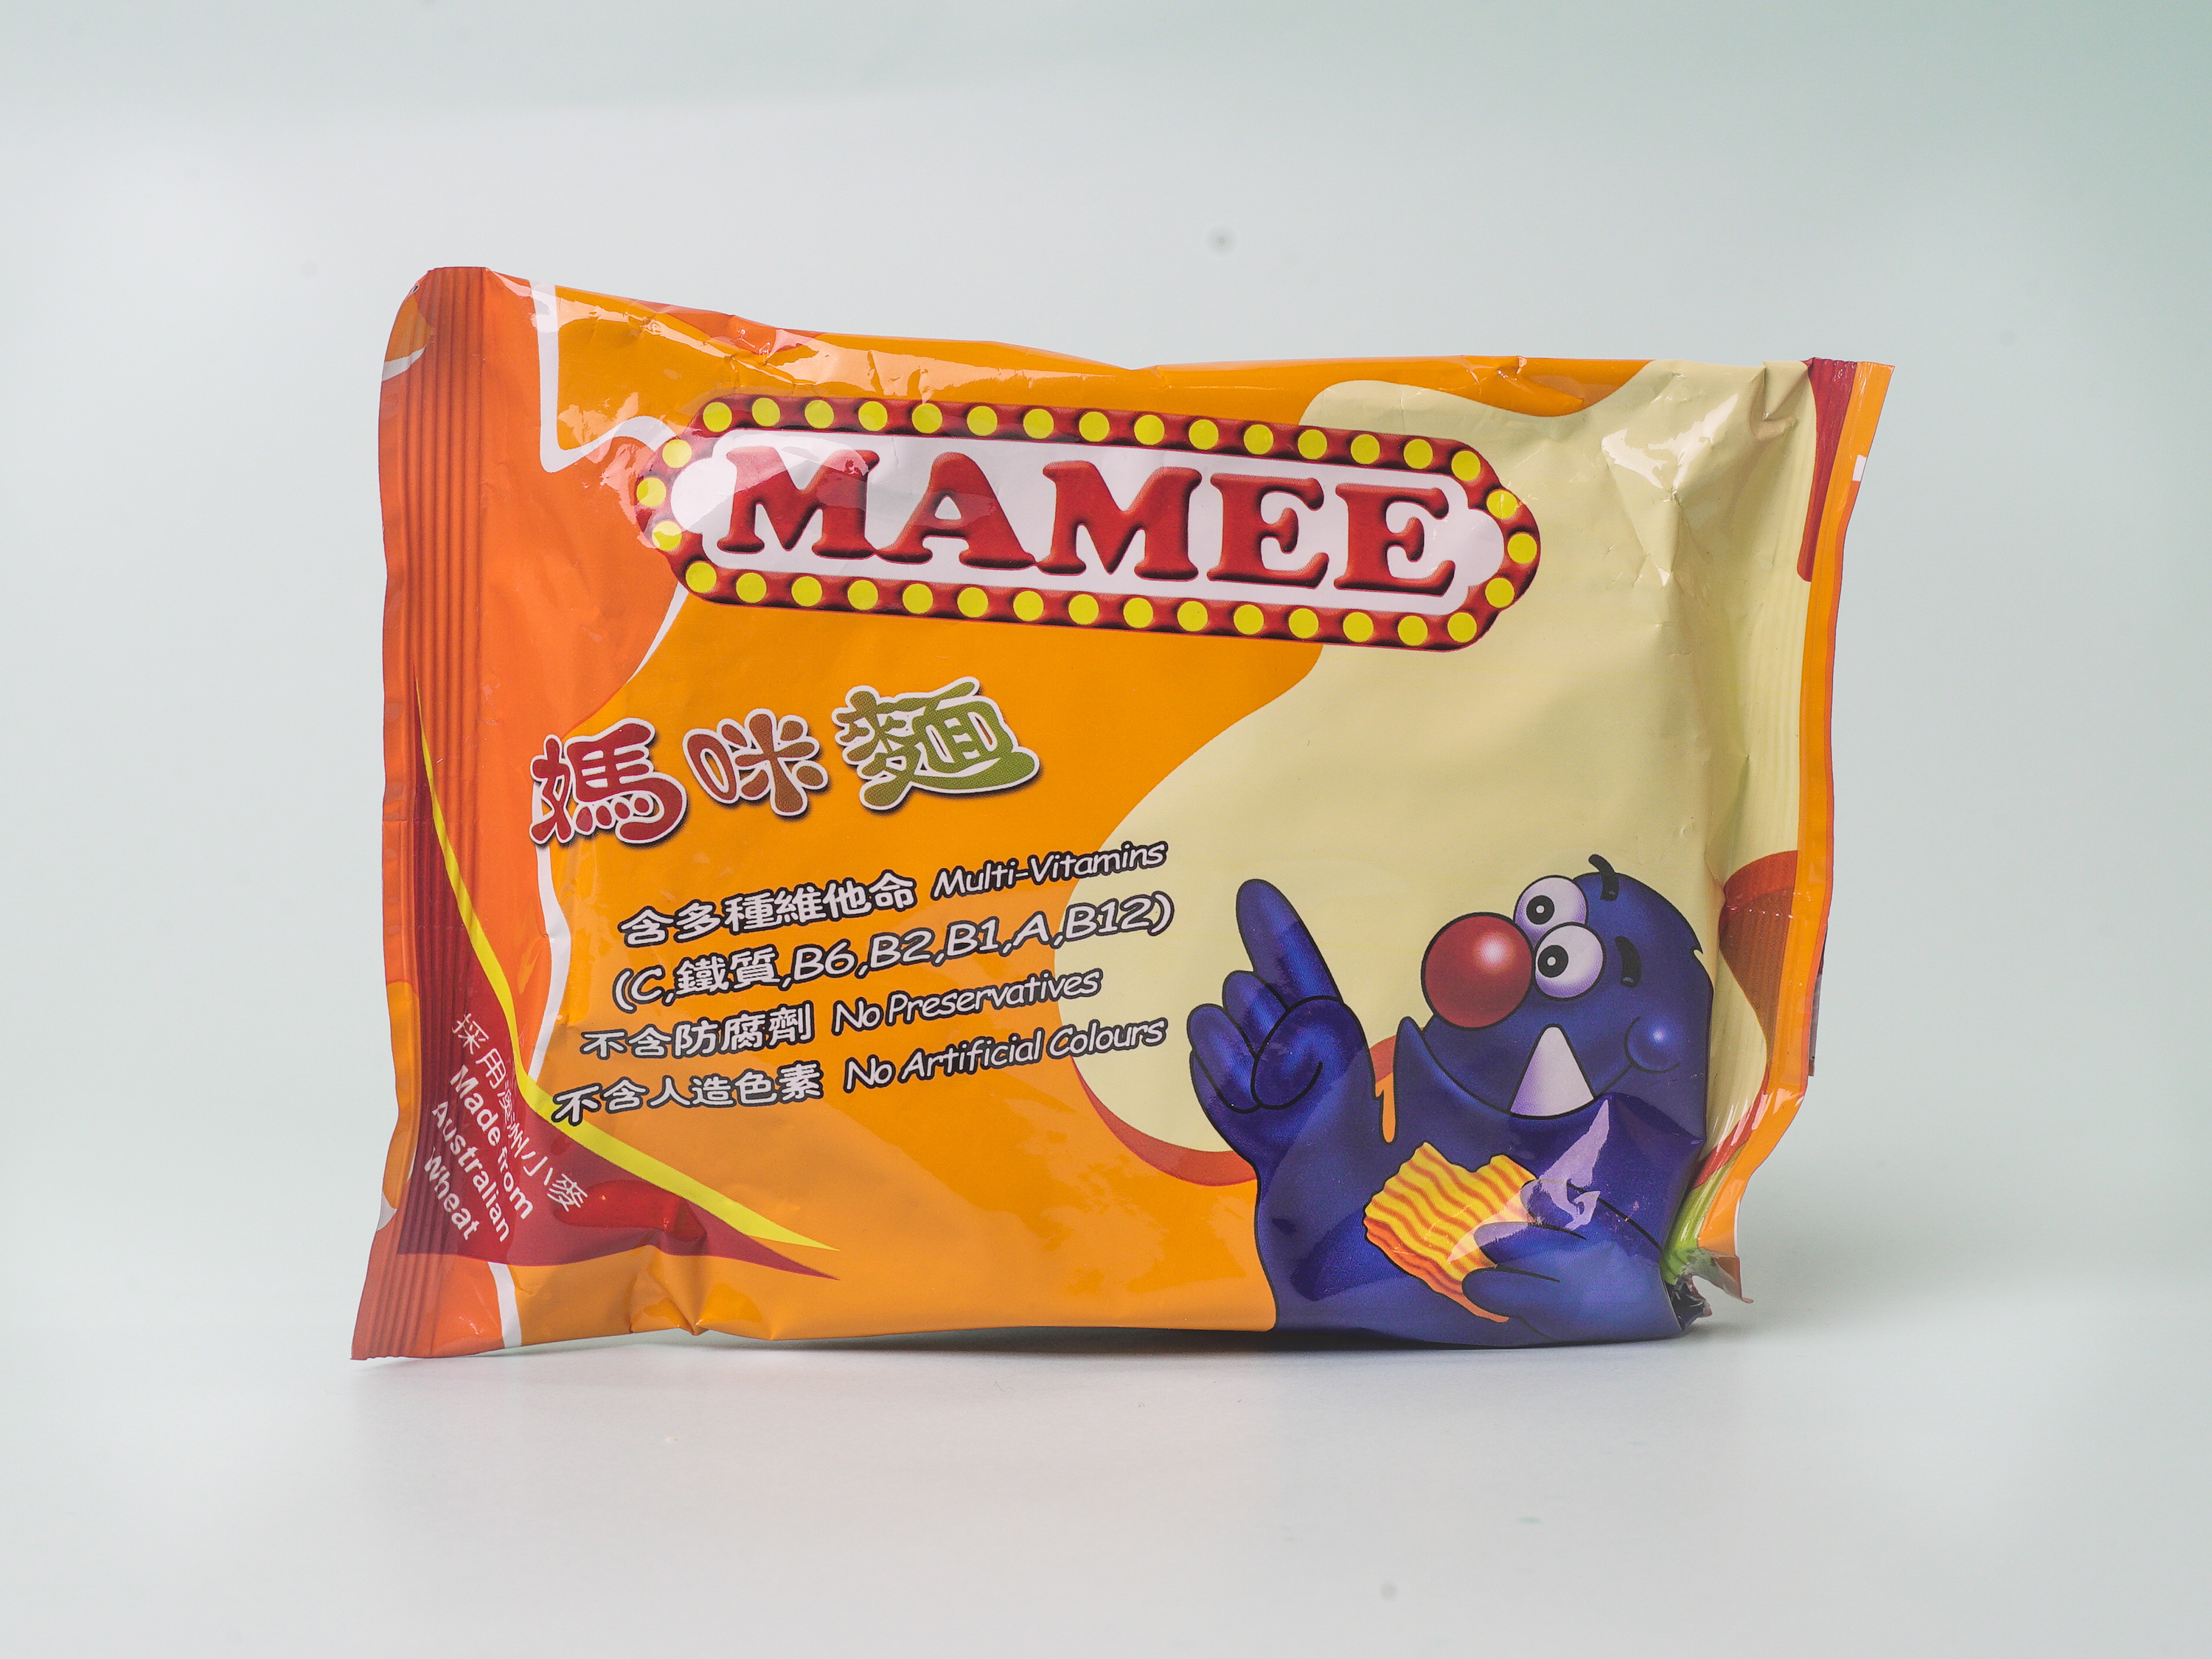 Mamee Noodles, 媽咪麵